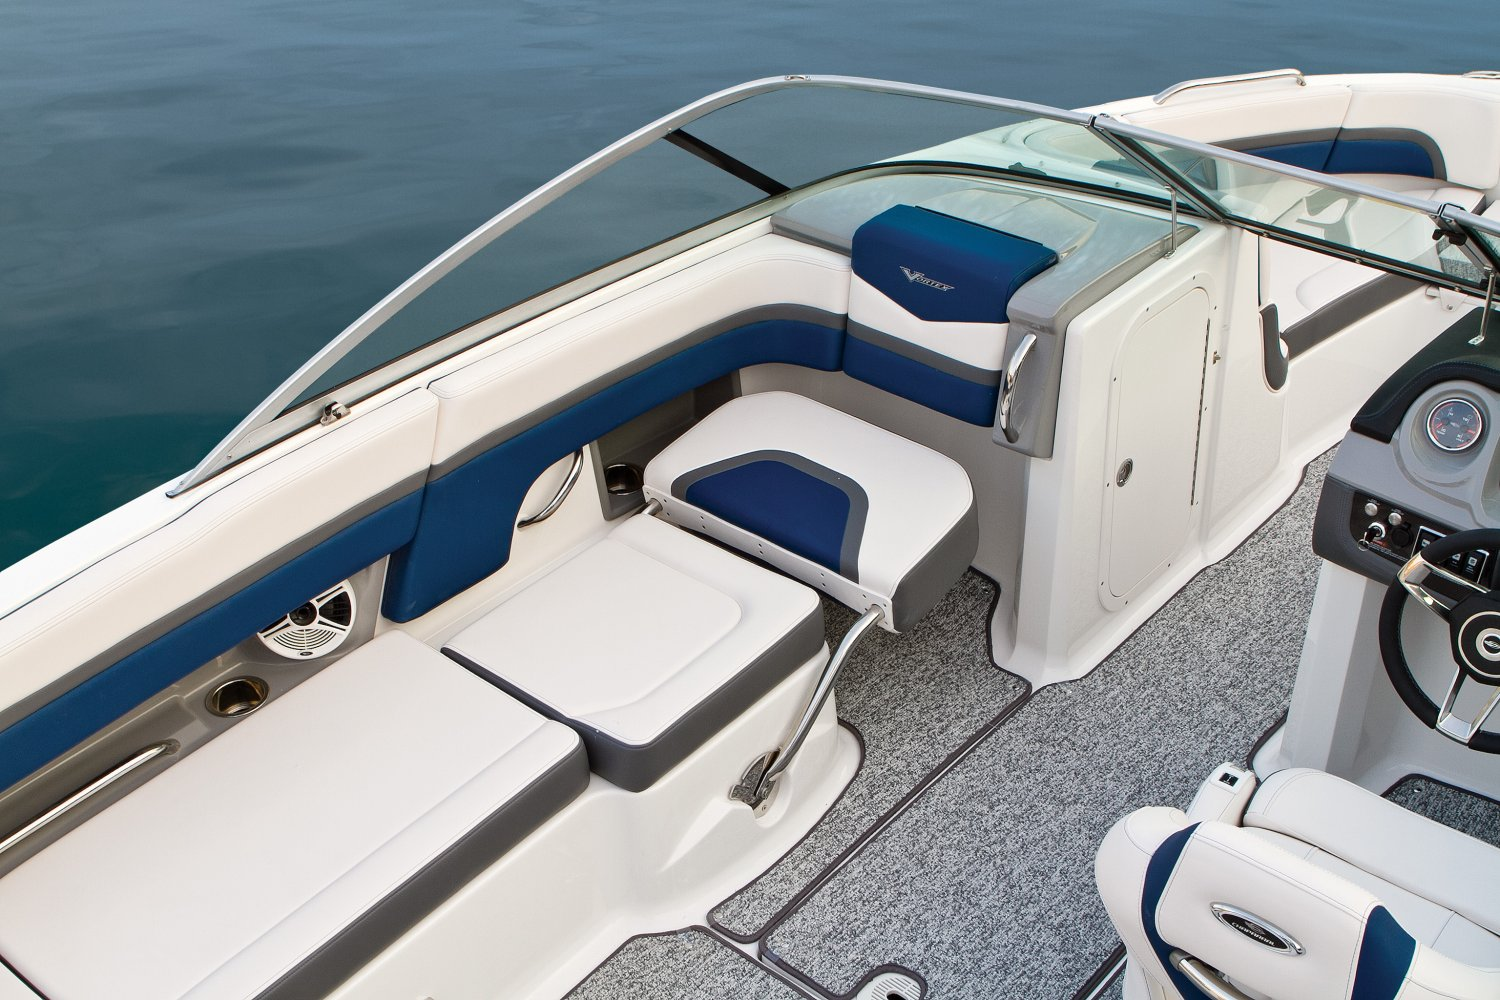 2016 Chaparral boat for sale, model of the boat is 223 VORTEX VR & Image # 5 of 25